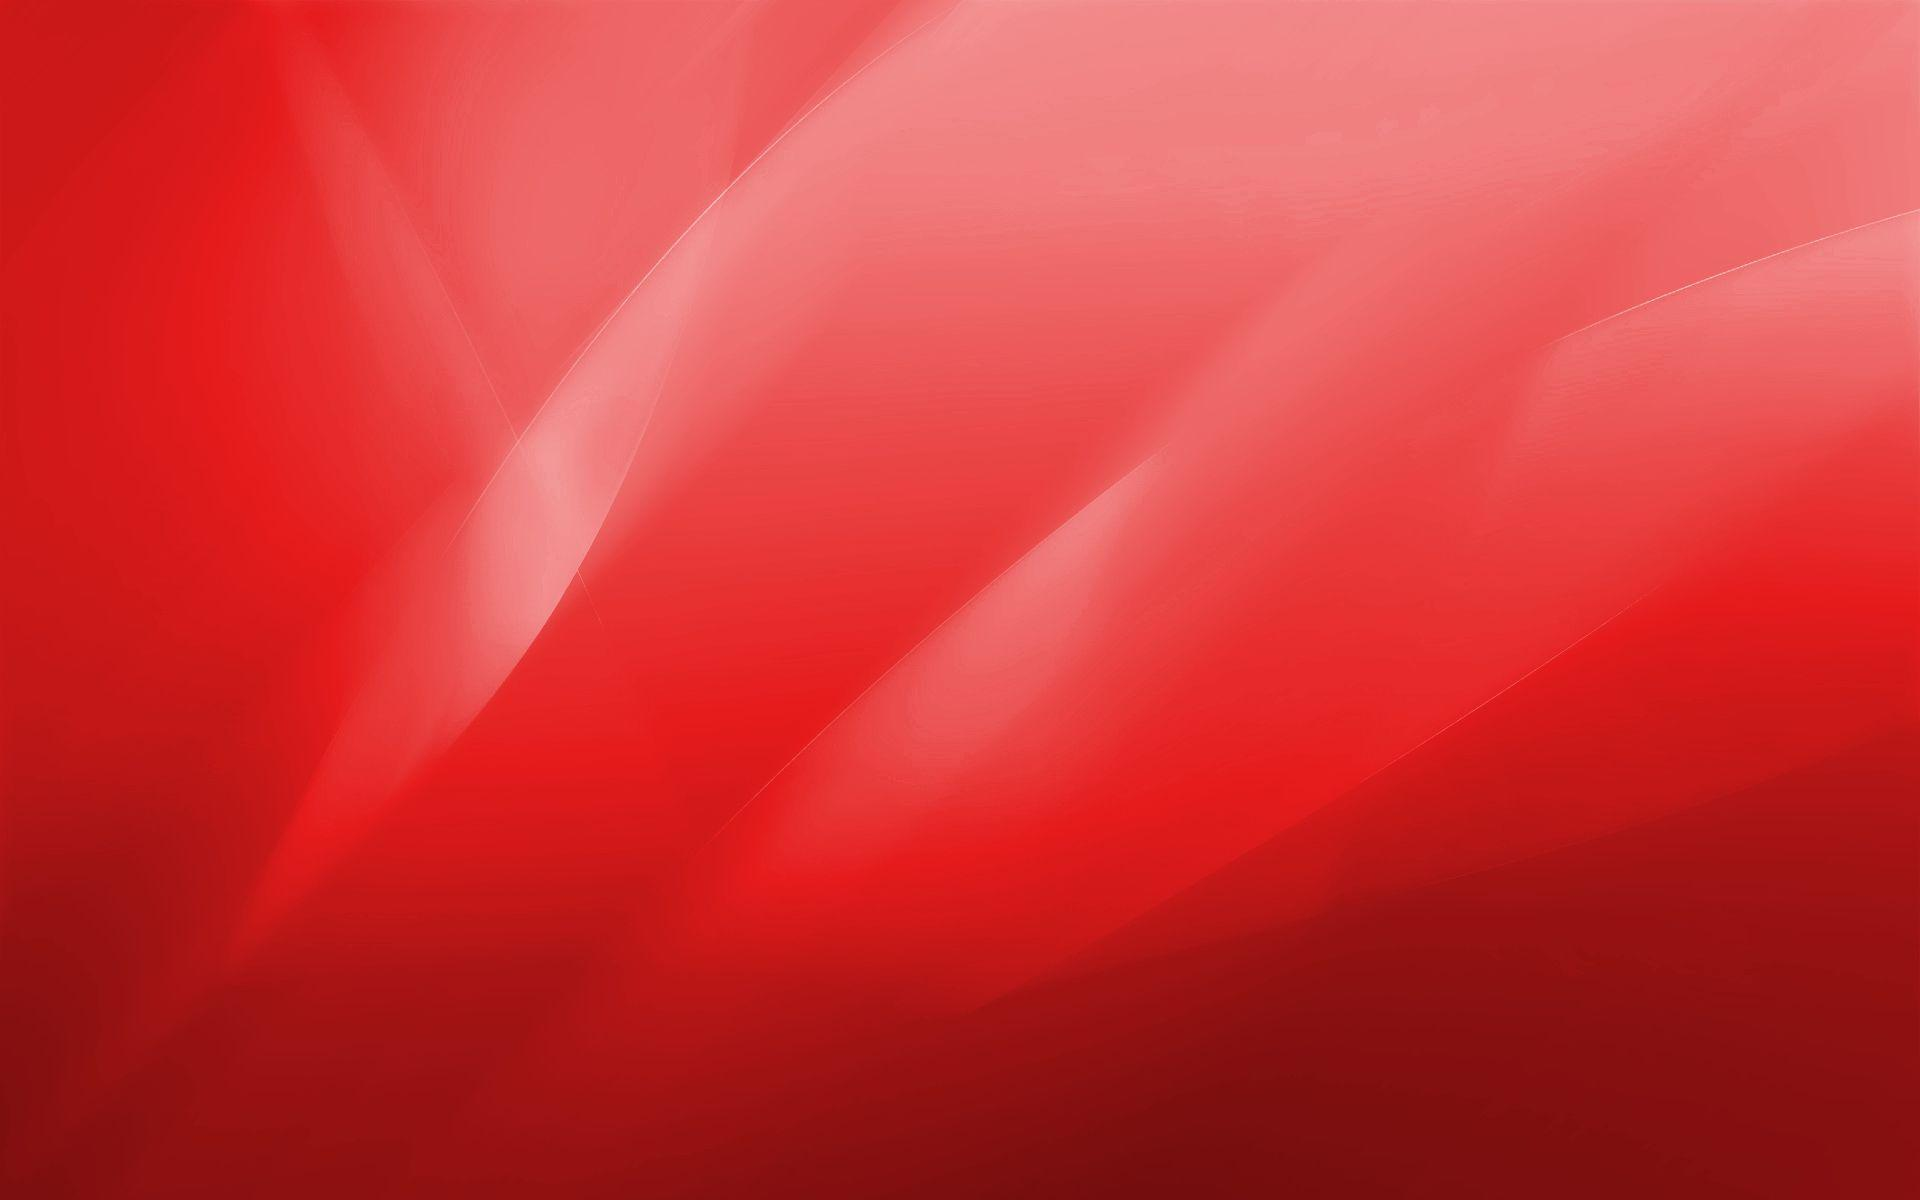 Red Desktop Backgrounds Wallpaper Cave Html Page Background Color